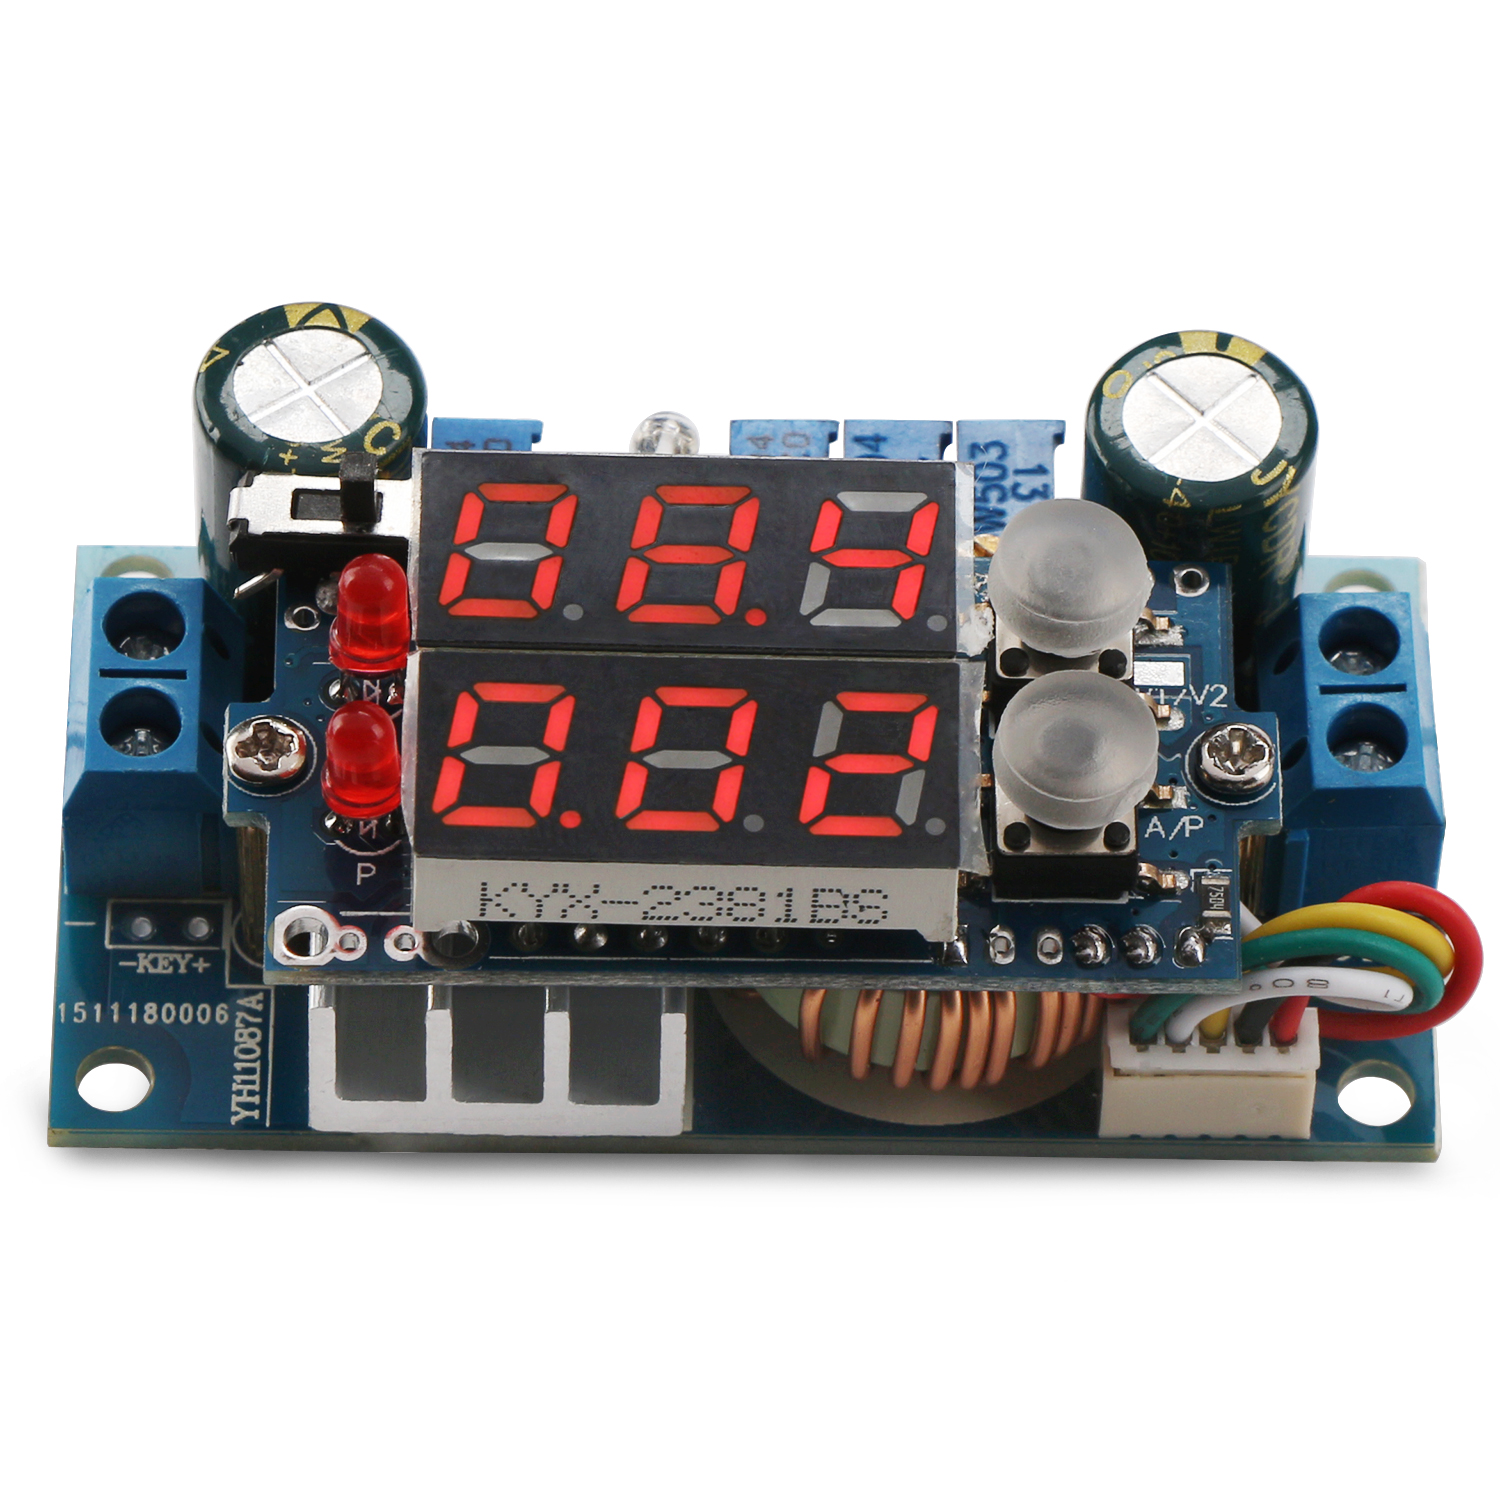 4in1 Adjustable Power Supply Module Dc 636v To 12532v 5a Digital Cc Semiconductors And Electronics In An Easy Understand